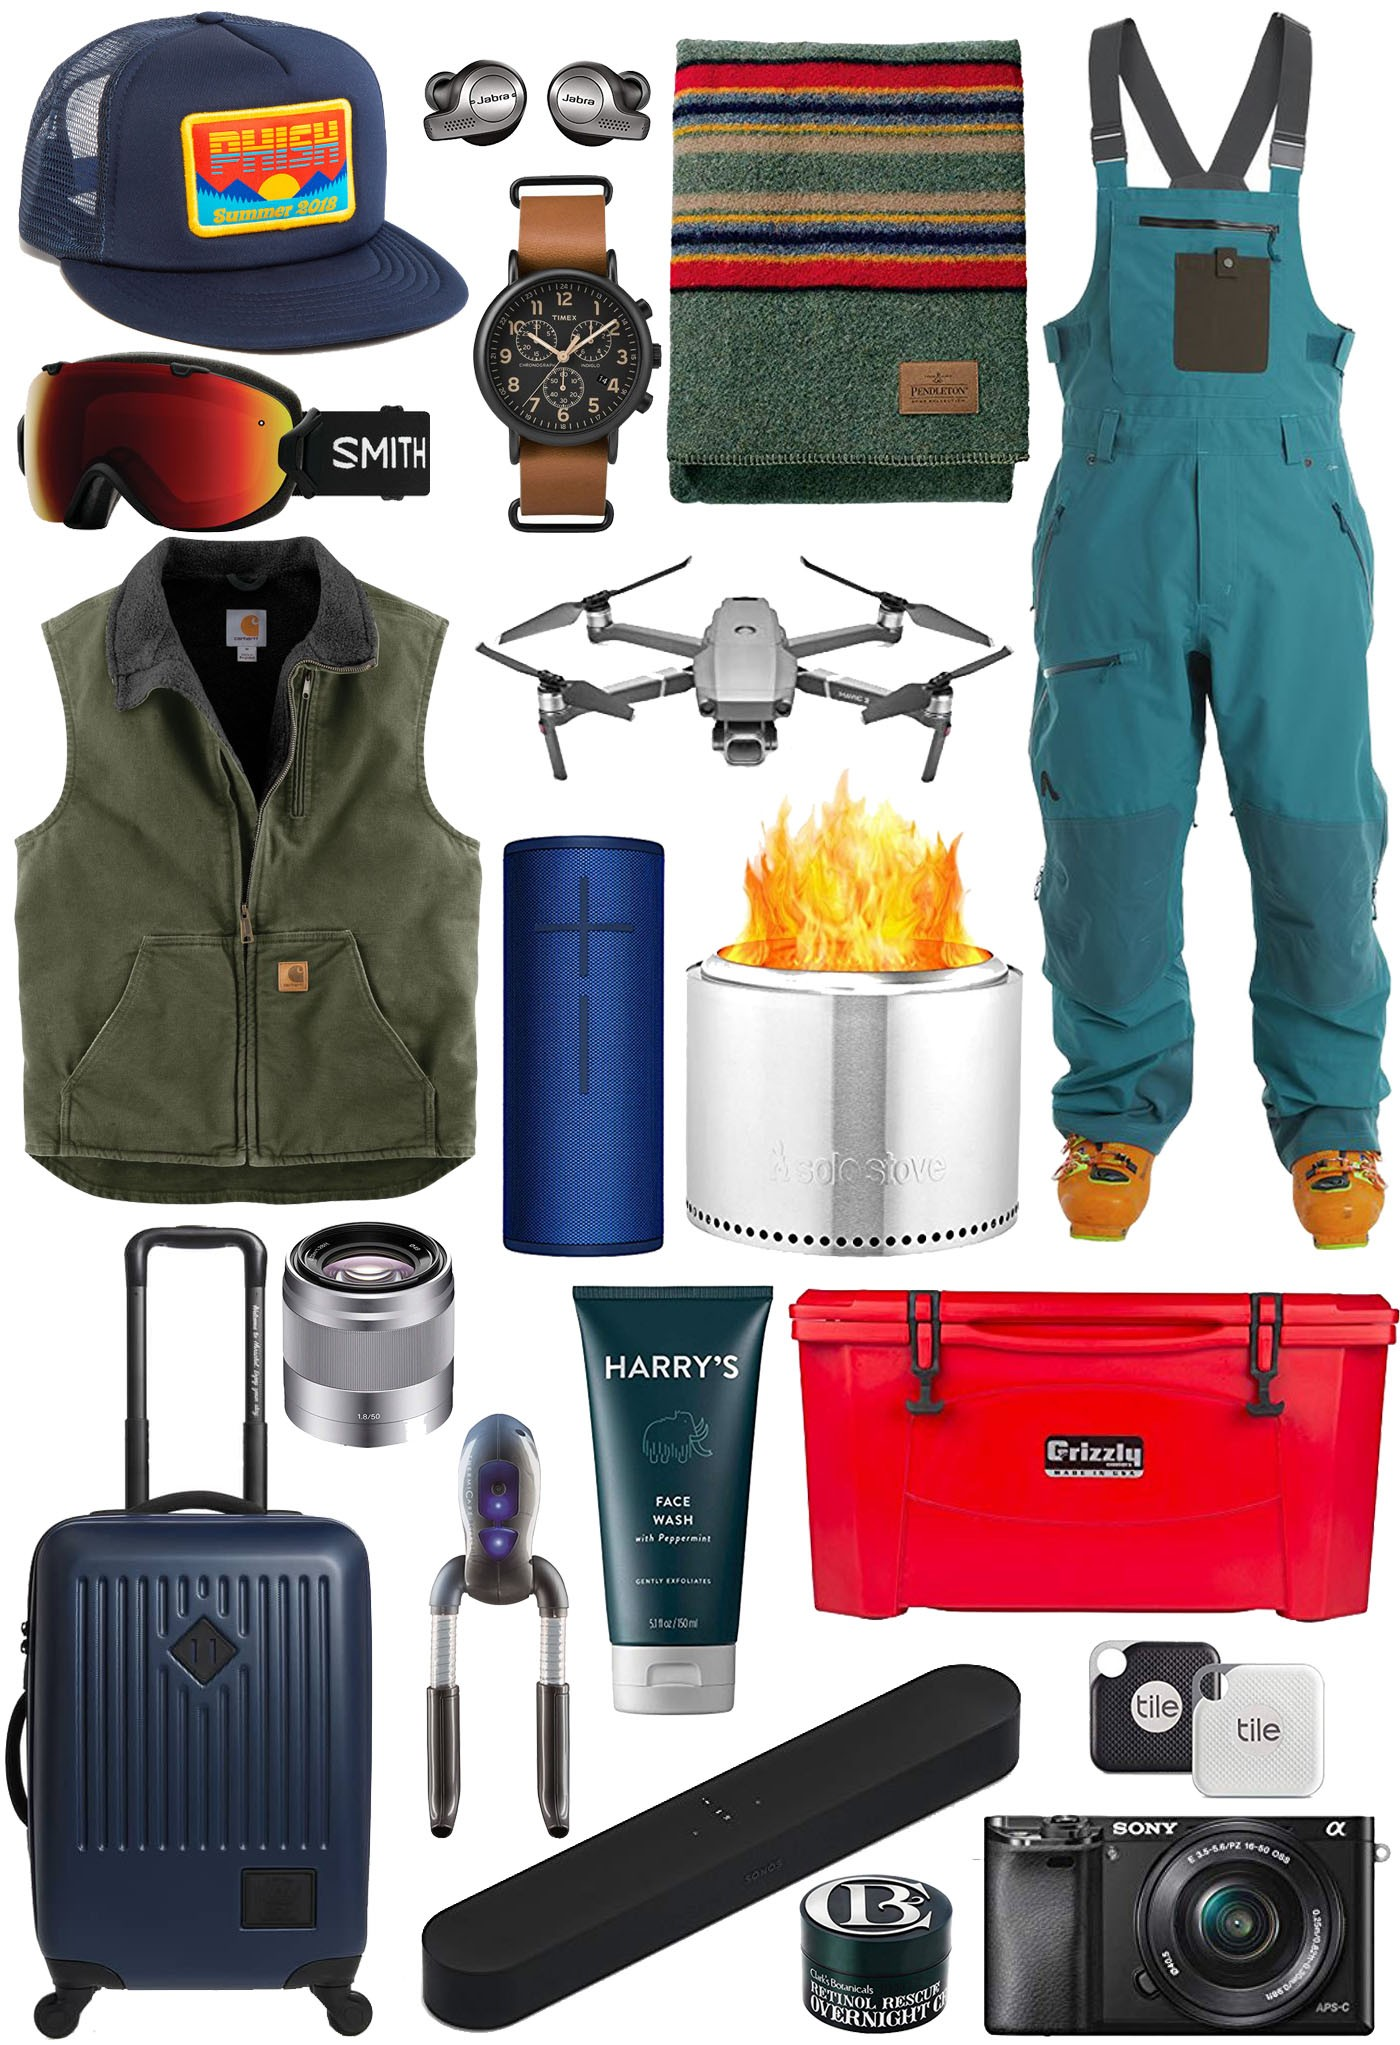 18 + Gifts Ideas For Guys - Blue Mountain Belle